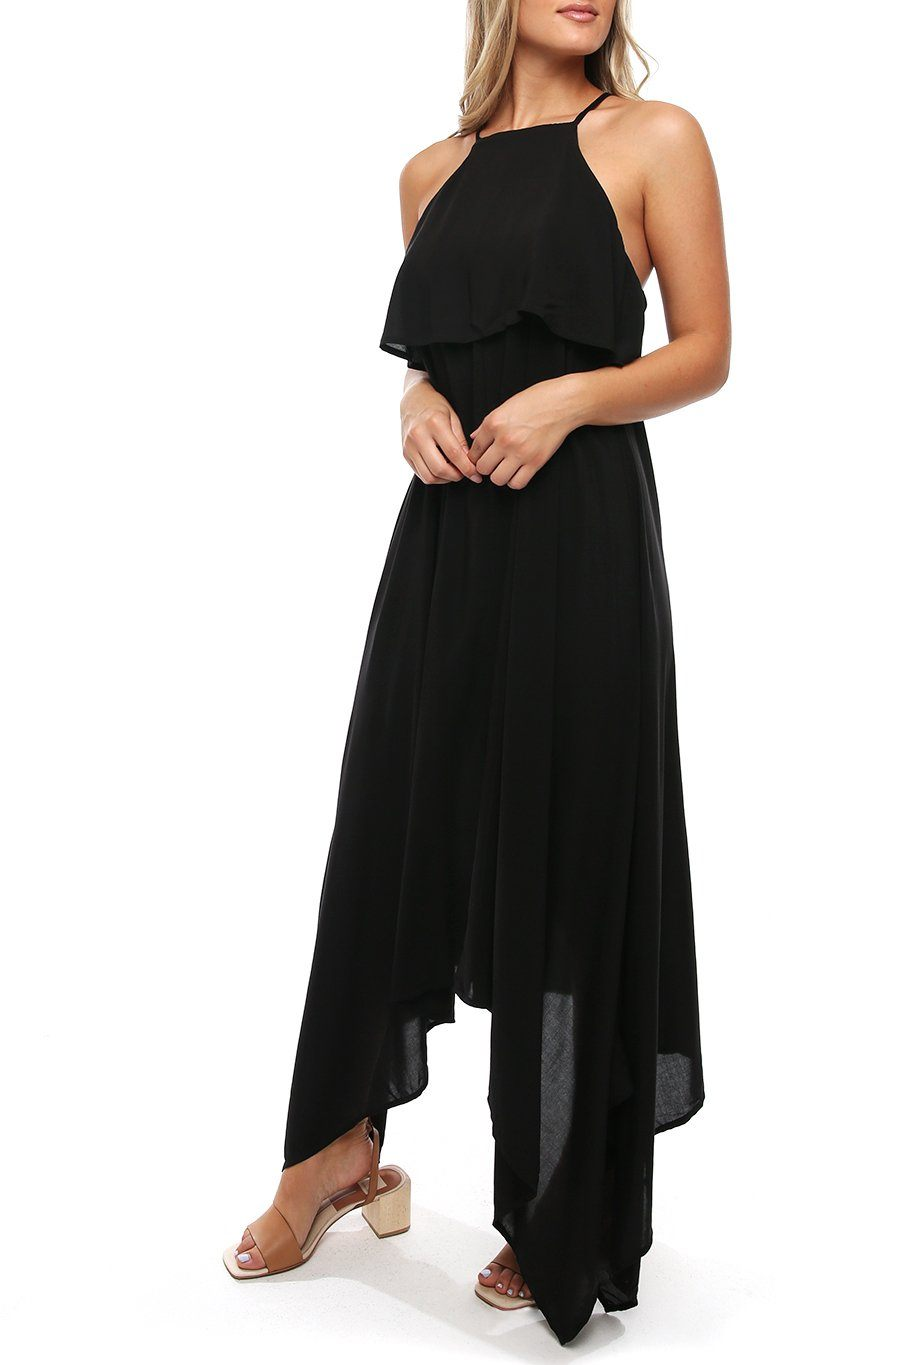 Maui Swing Dress - Black - Shore